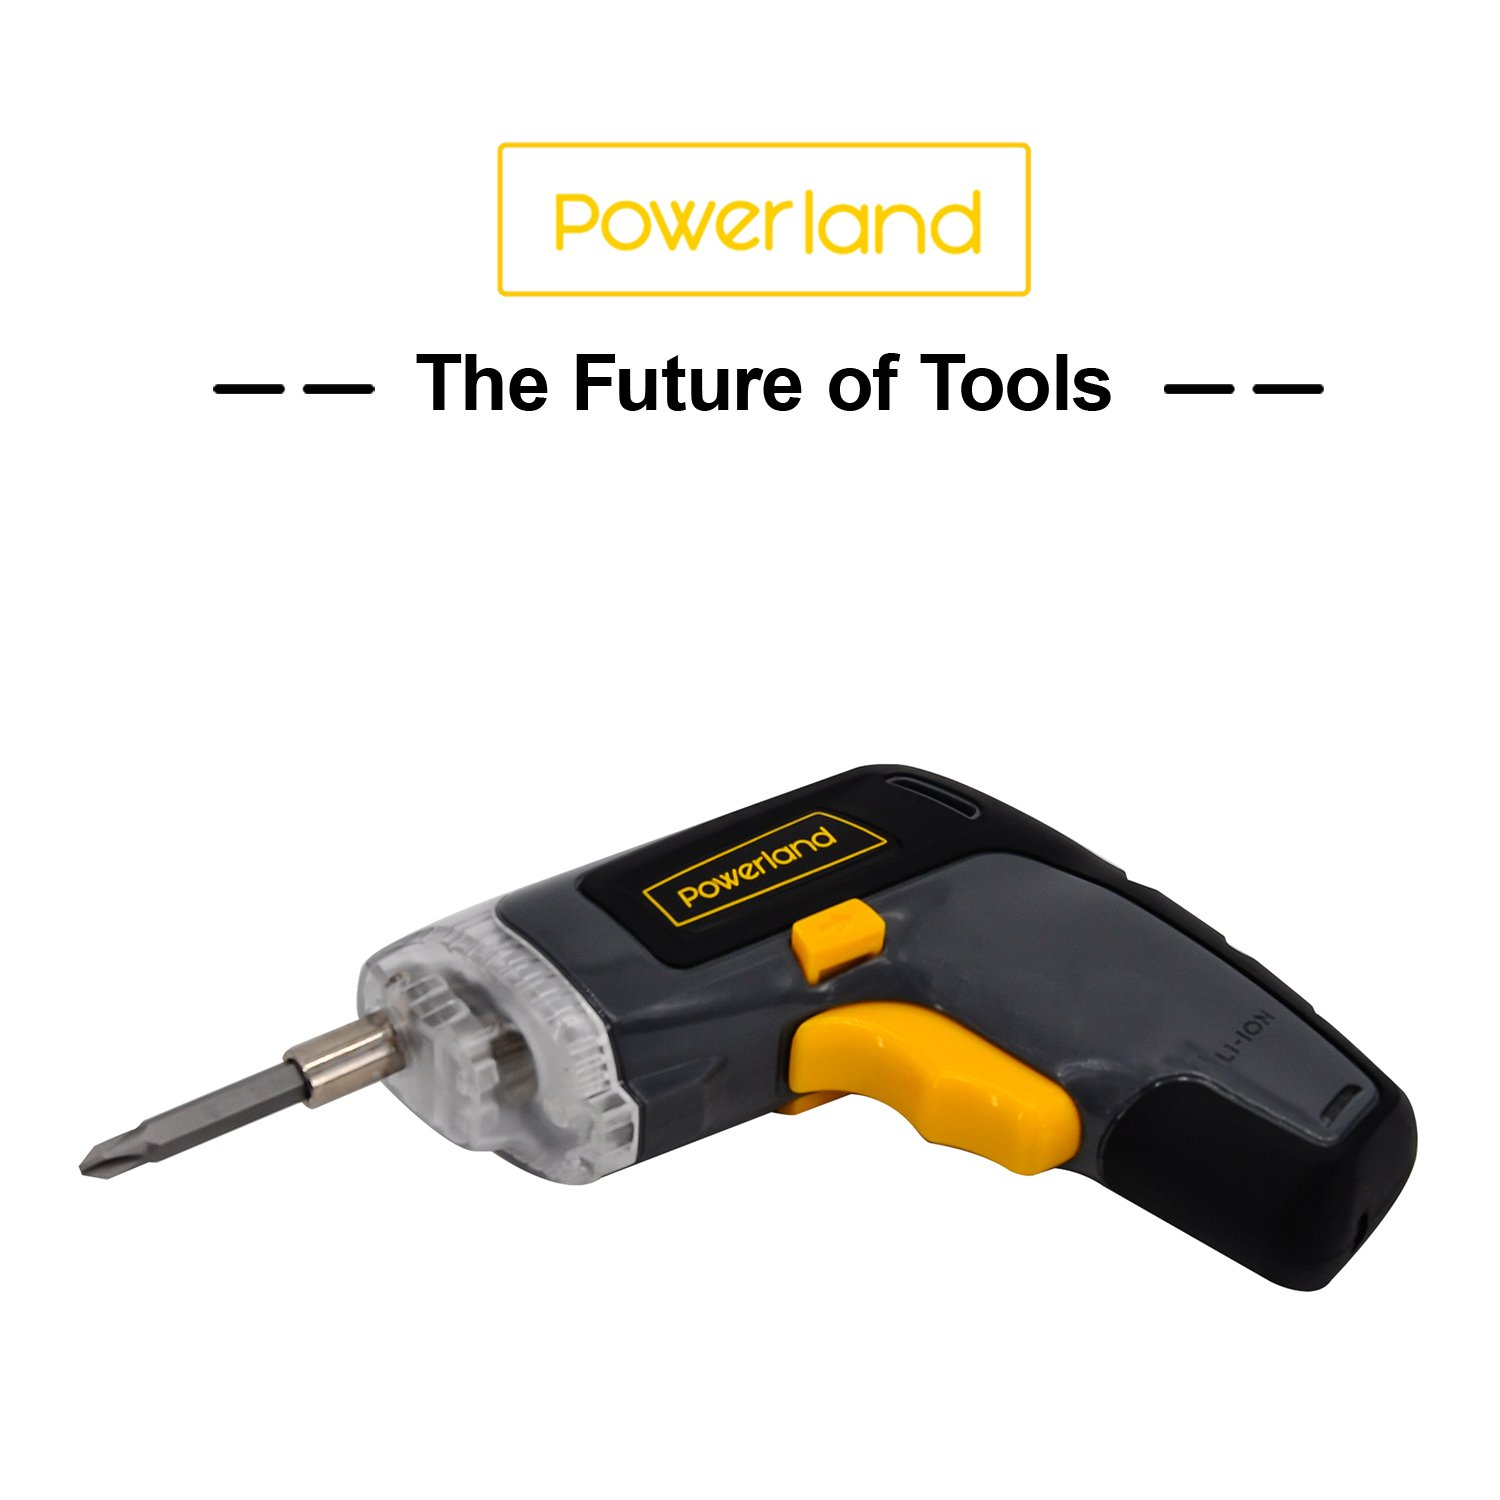 Powerland 3.6V Li-ion Battery Cordless Screwdriver S008 YOUNGSUN